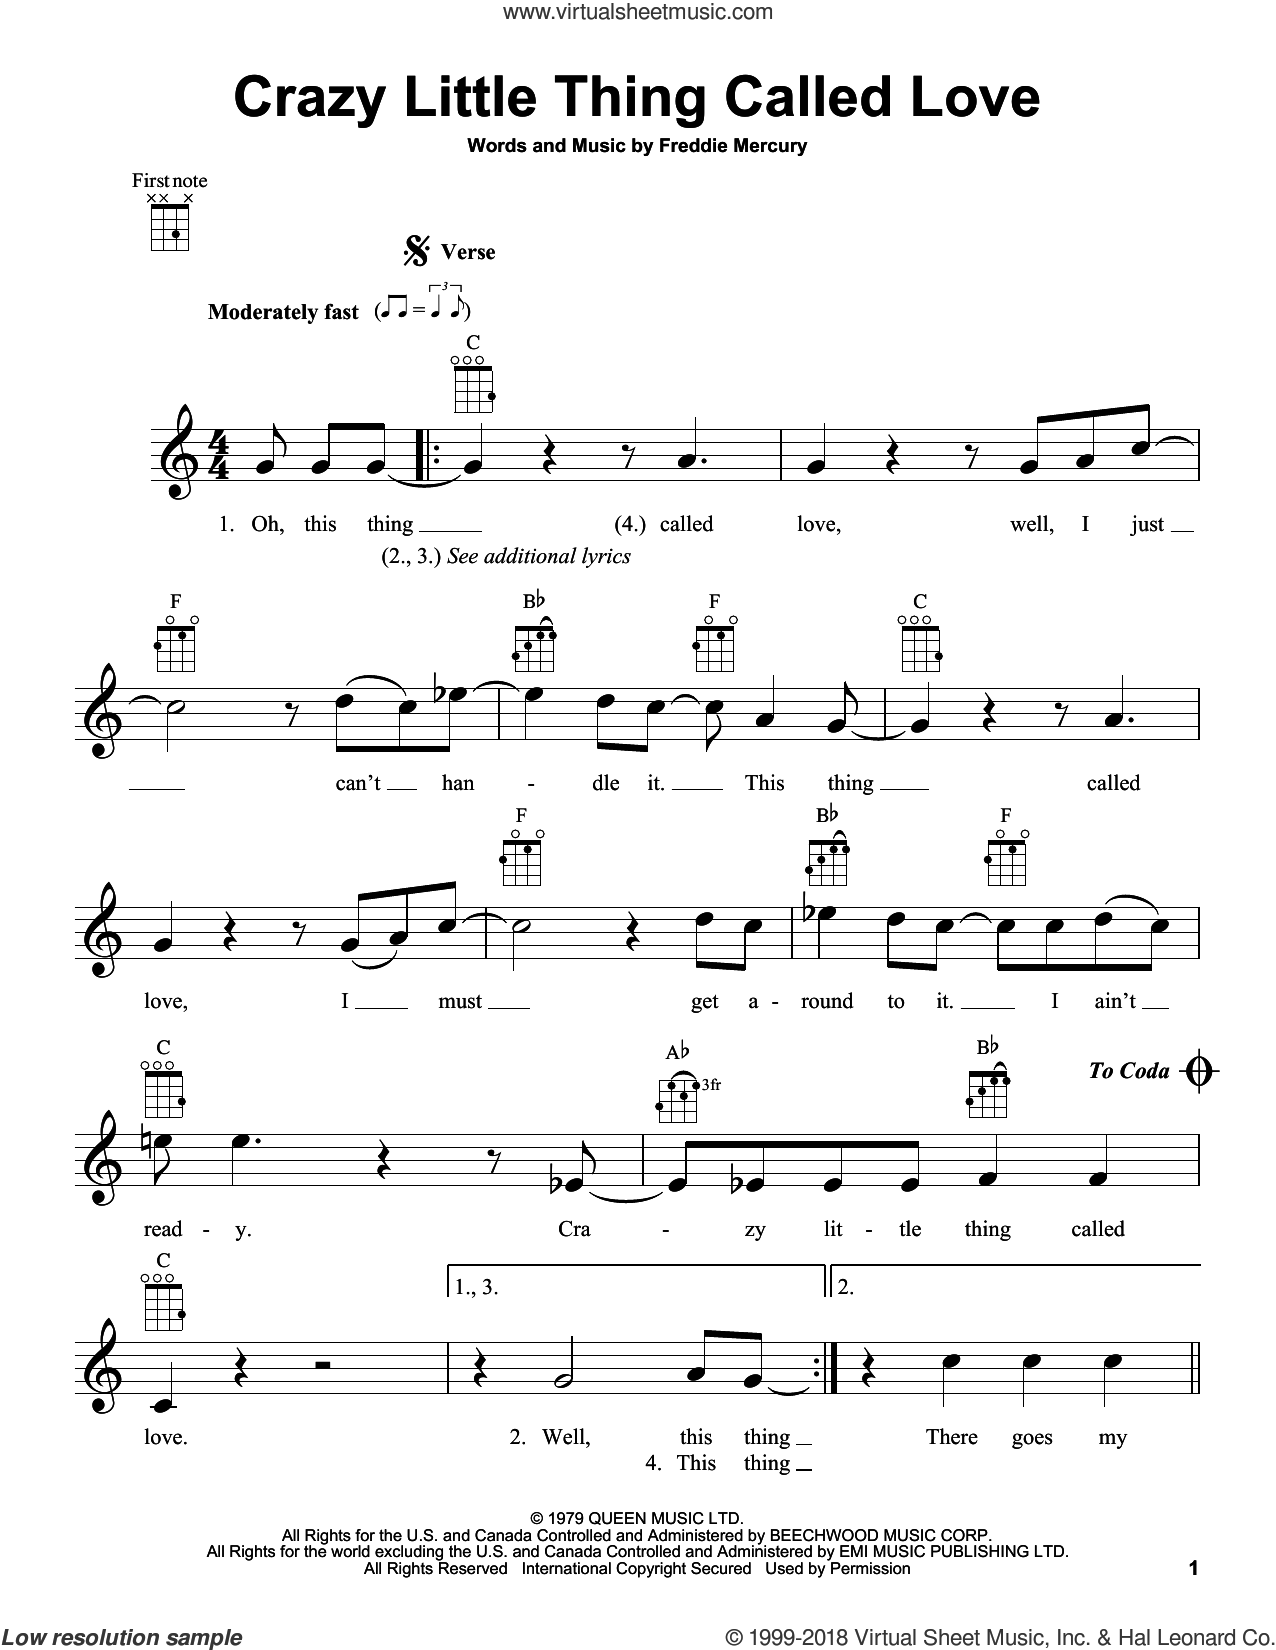 Crazy Little Thing Called Love sheet music for ukulele by Freddie Mercury